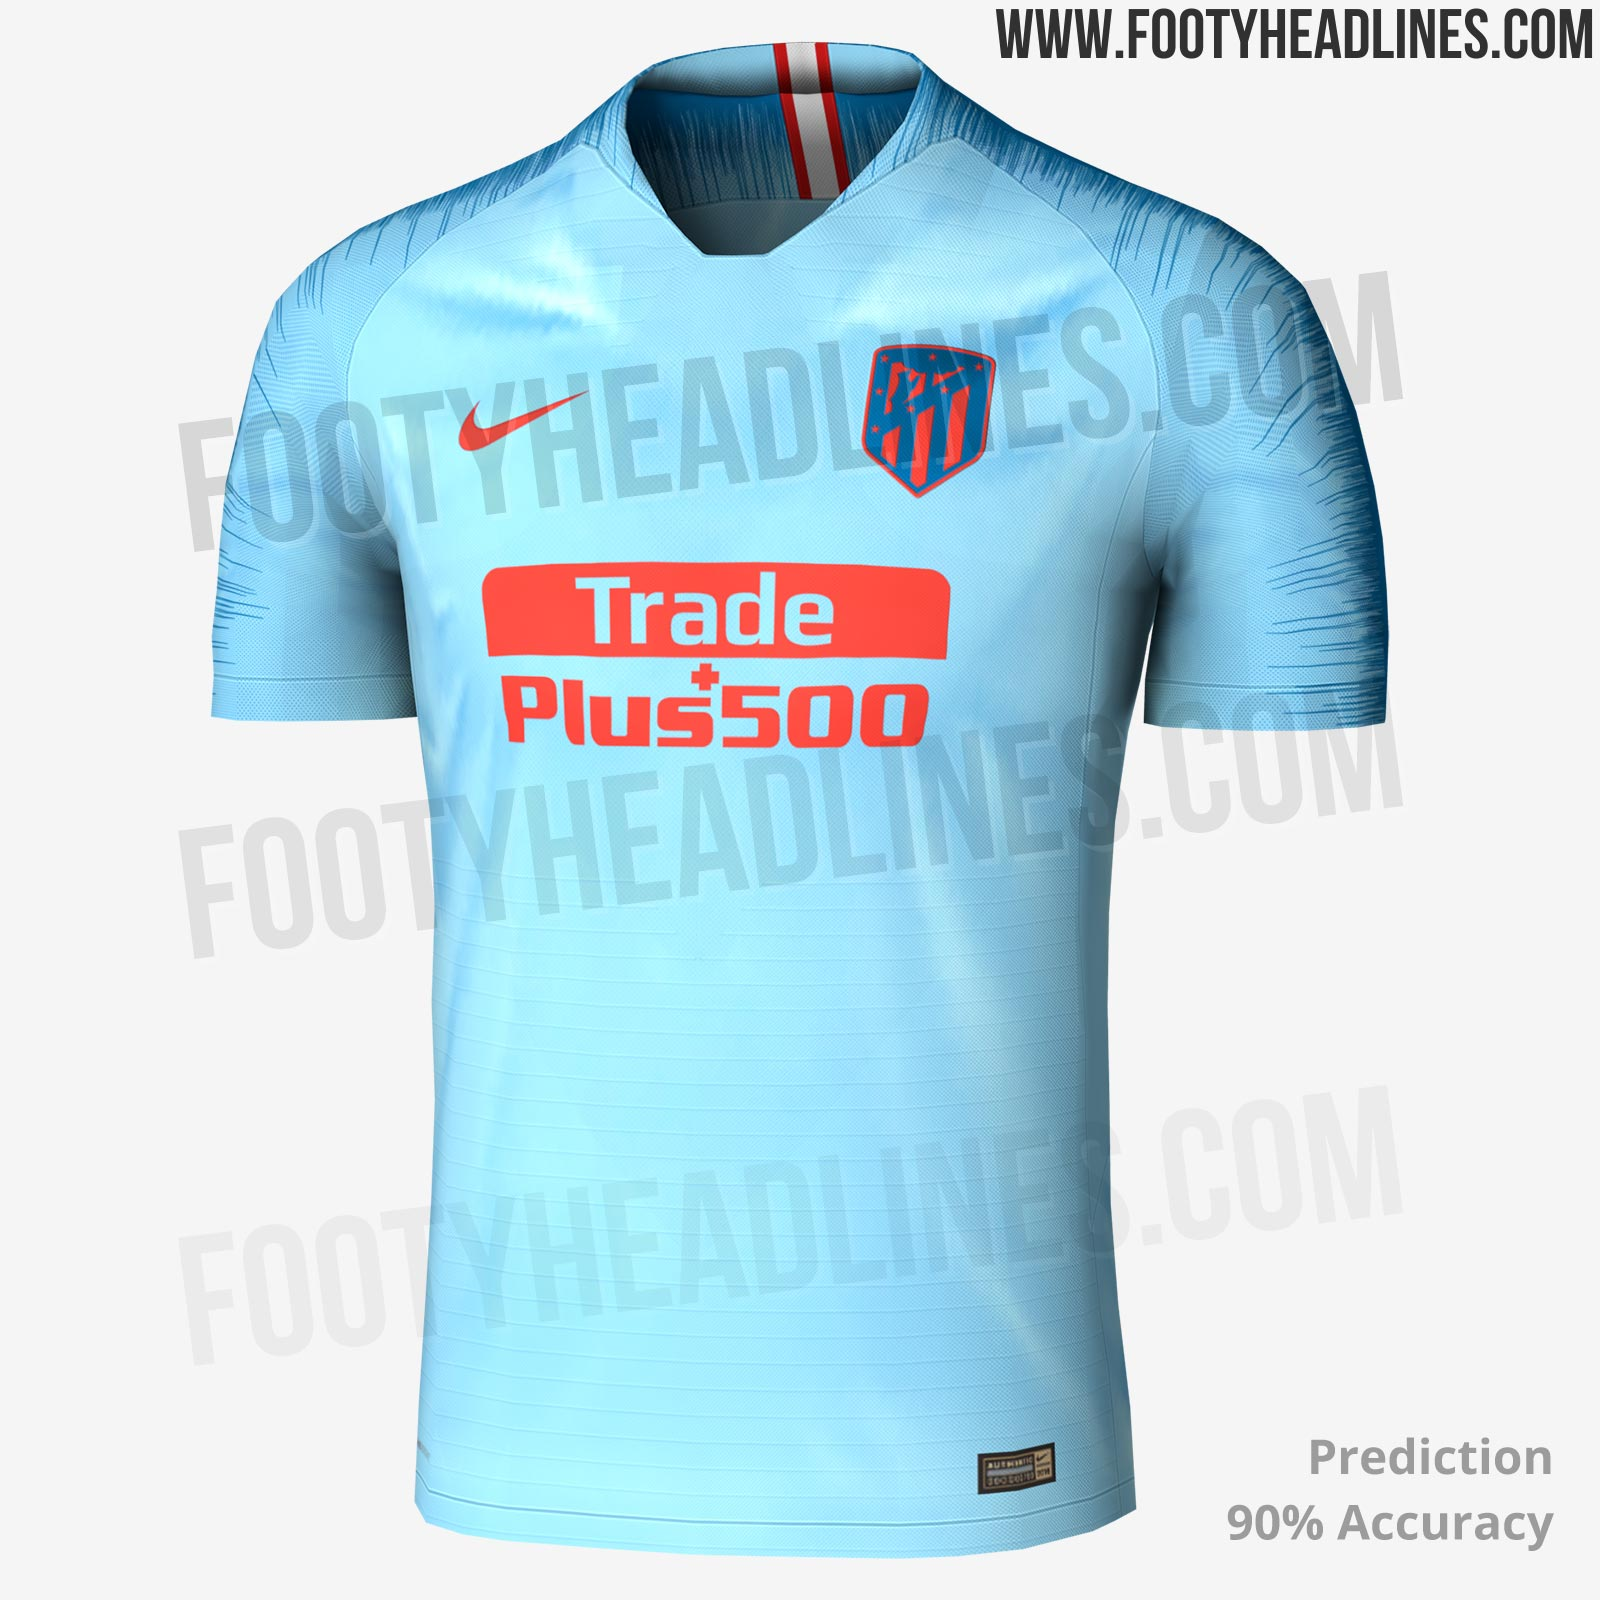 The new Atlético Madrid 2018-2019 away jersey is bright blue with dark blue  and red accents. The exact shades used on the Nike Atletico 2018-19 away  shirt ... 67539bcad